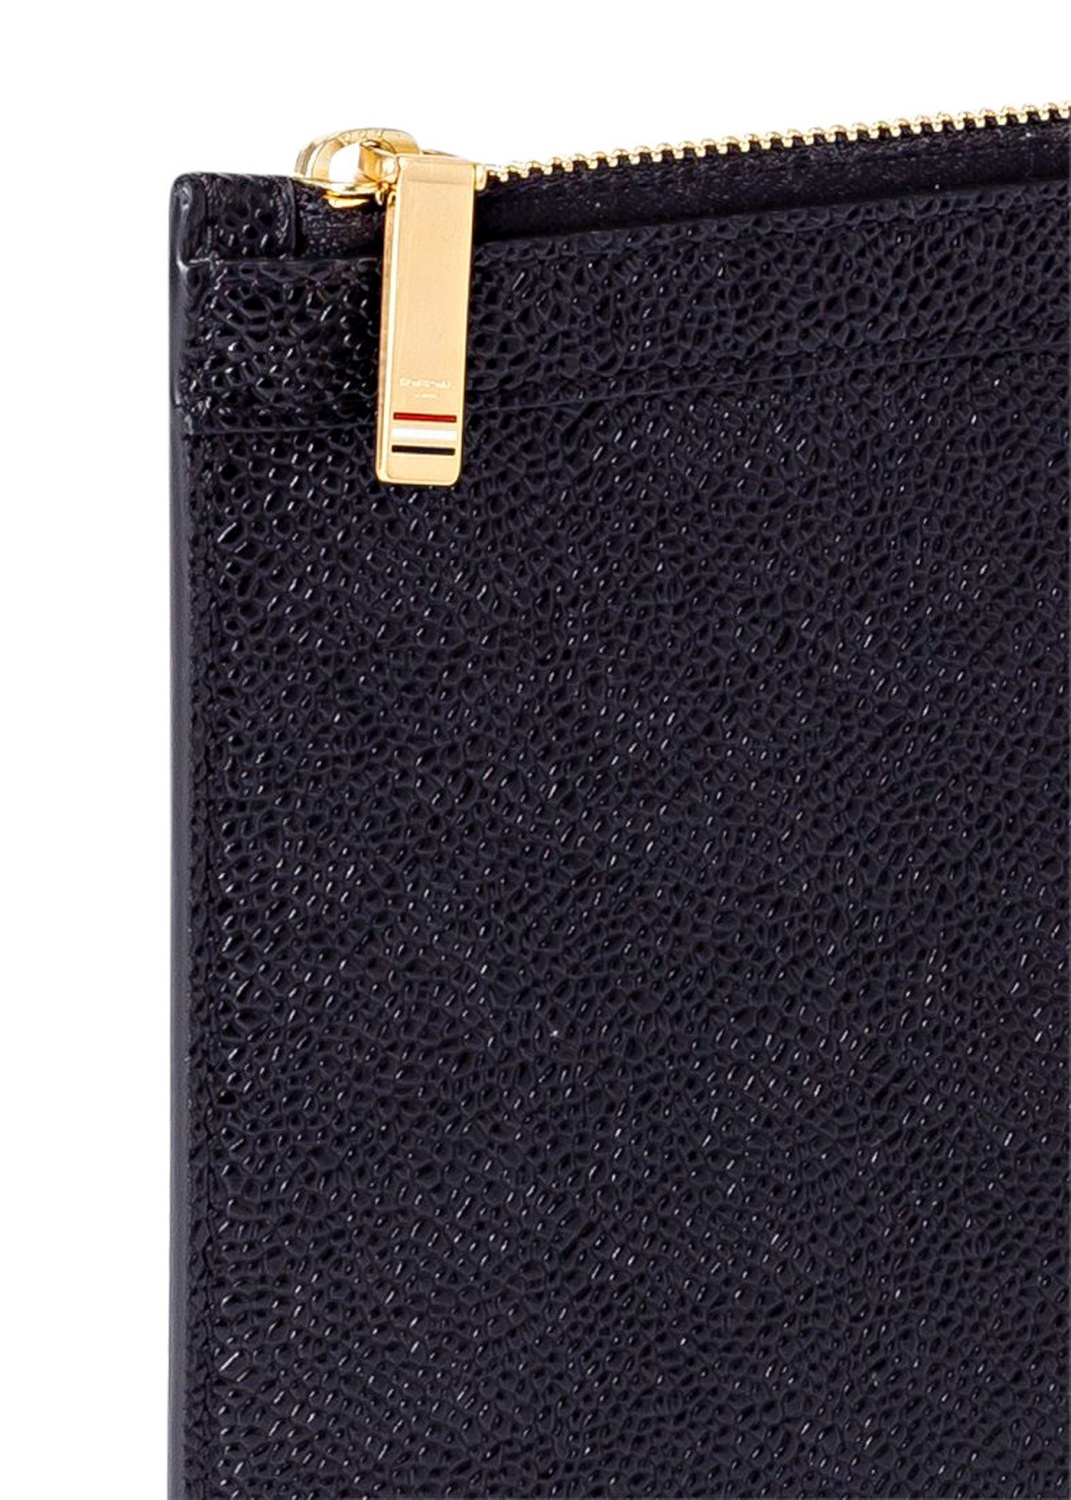 SMALL ZIPPER TABLET HOLDER (29.5X20CM) image number 2